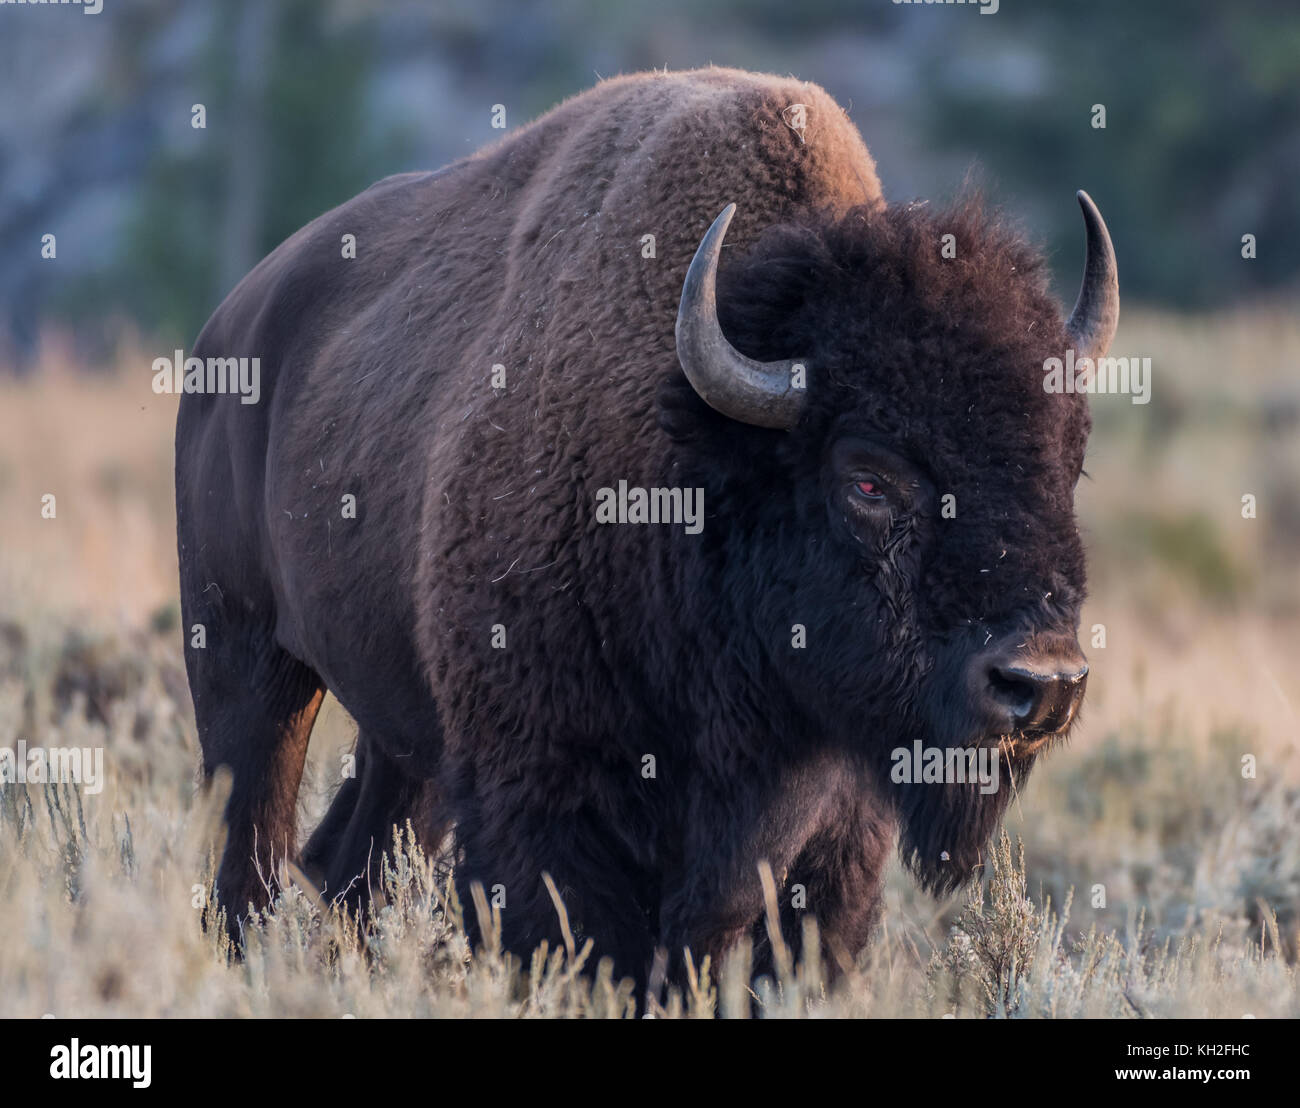 American Bison with Injured Eye in Yellowstone - Stock Image